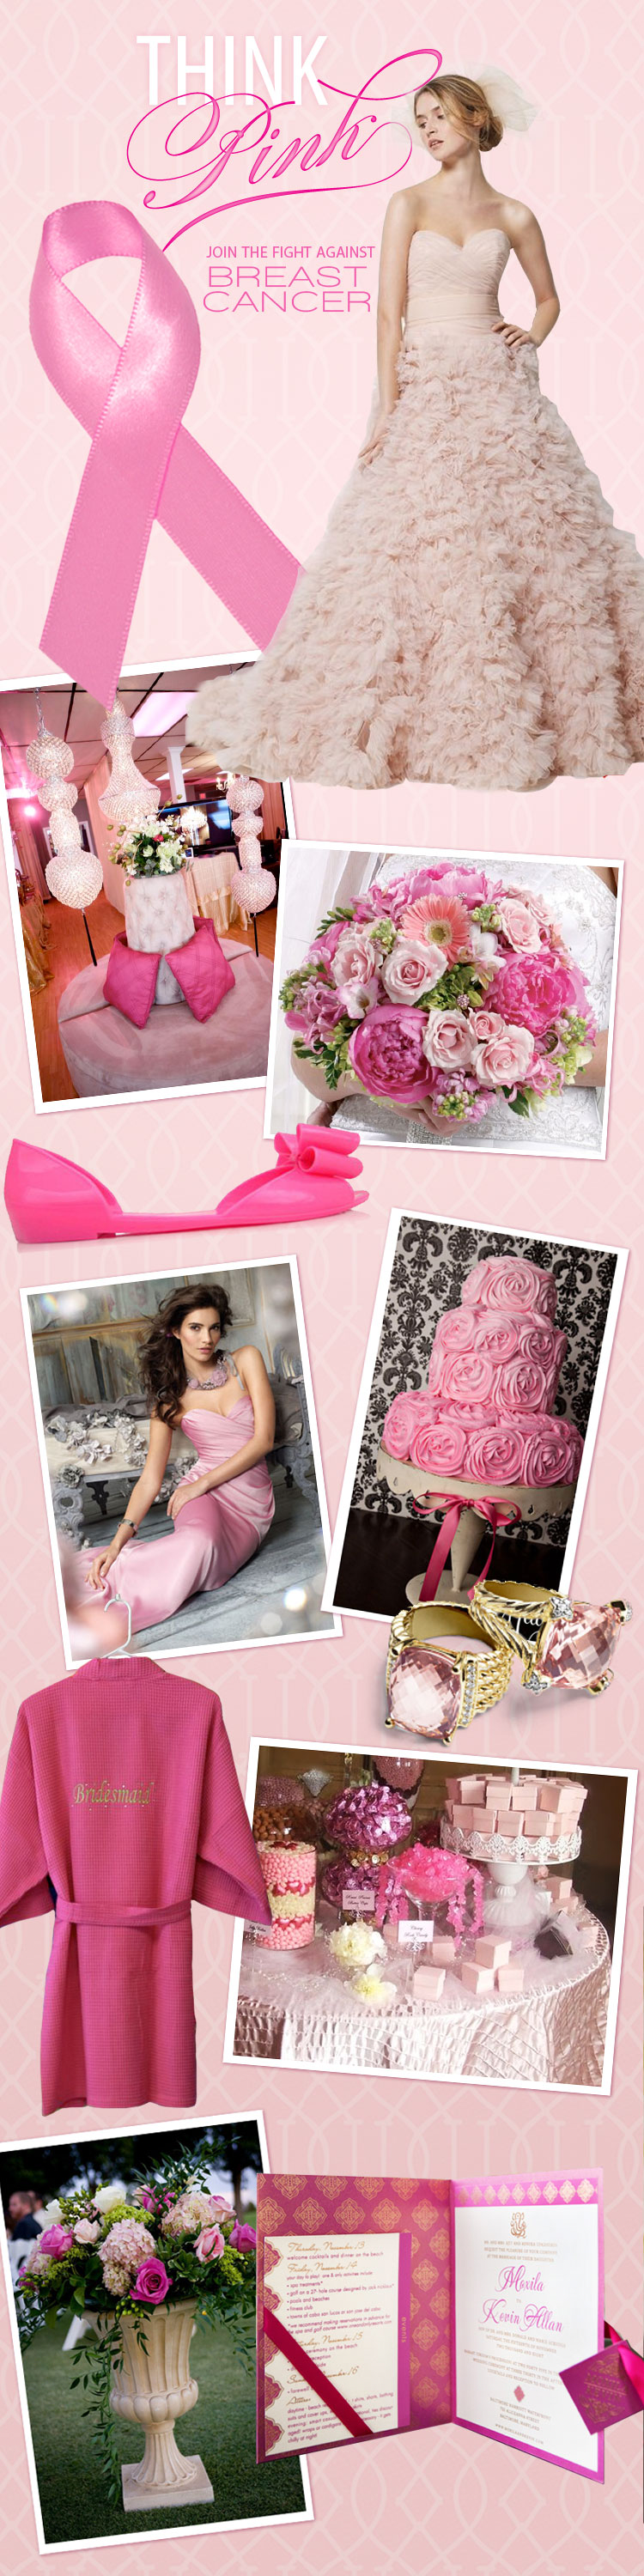 Brides of Oklahoma Breast Cancer Awareness pink wedding inspiration